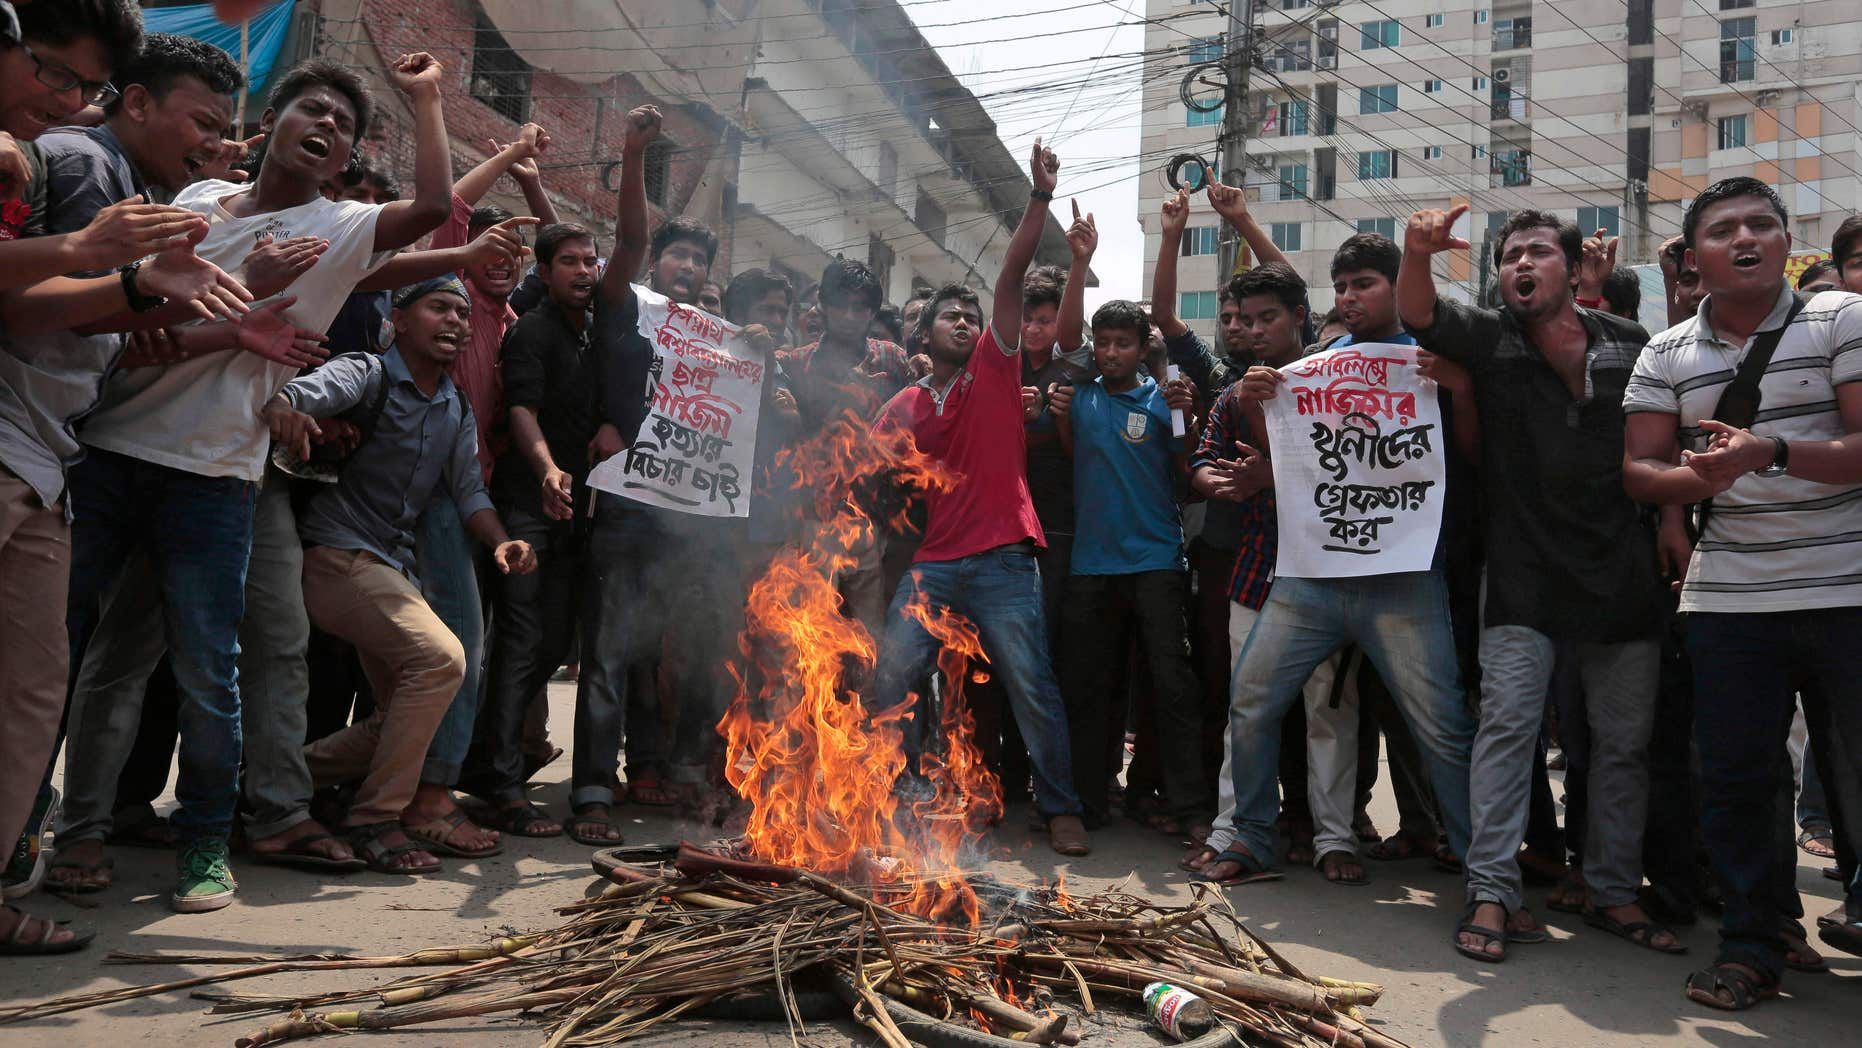 April 7, 2016: Bangladeshi students protest seeking arrest of three motorcycle-riding assailants who hacked student activist Nazimuddin Samad to death as he walked with a friend, in Dhaka, Bangladesh.